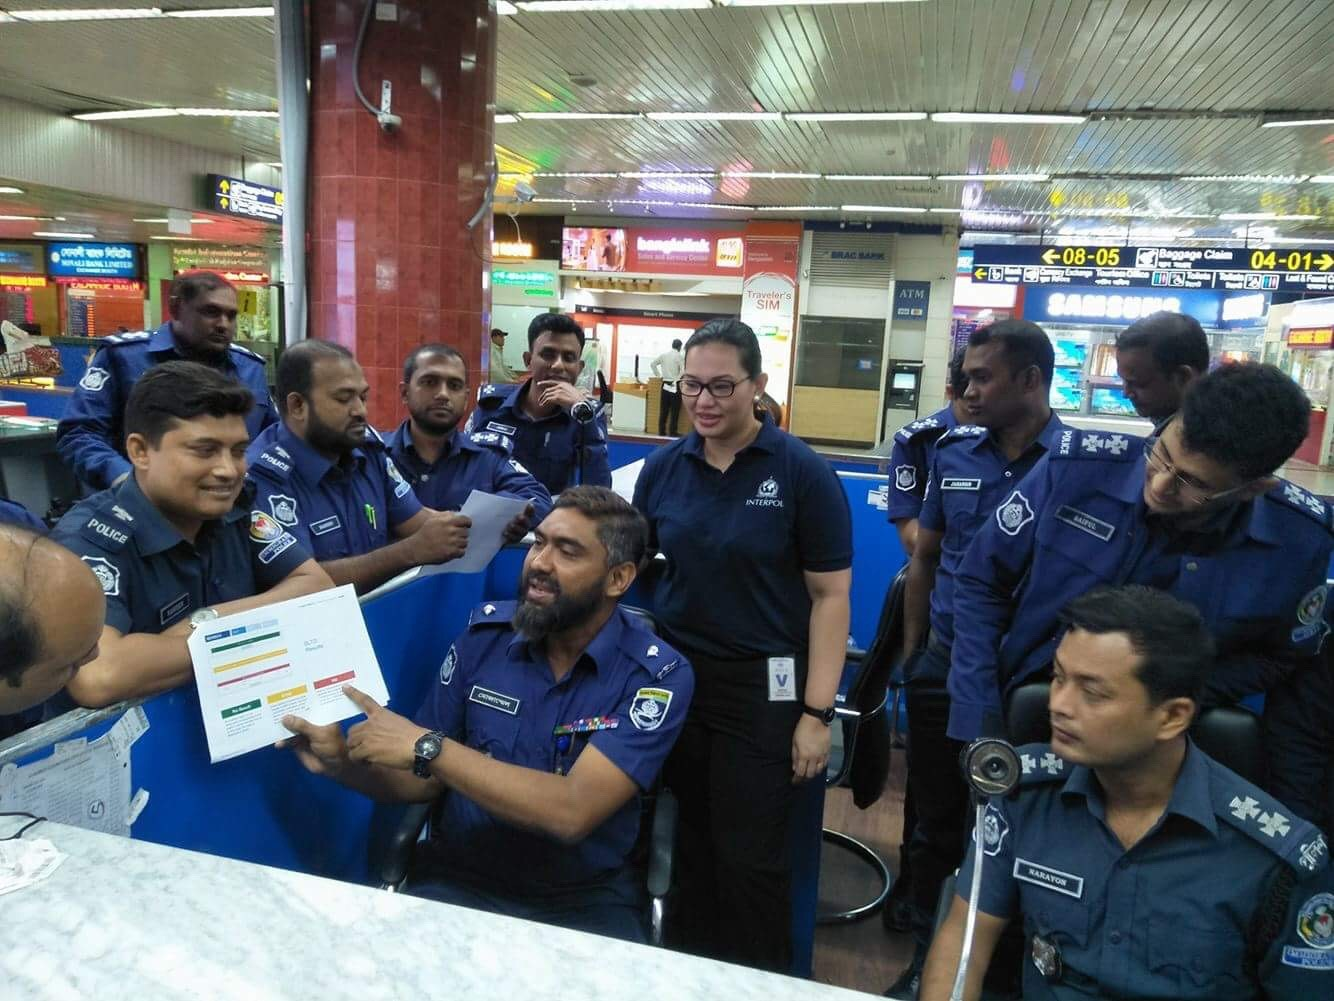 Trainer Mozammel Hussein giving a briefing on Operation Mandala at the counters in Dhaka, Bangladesh